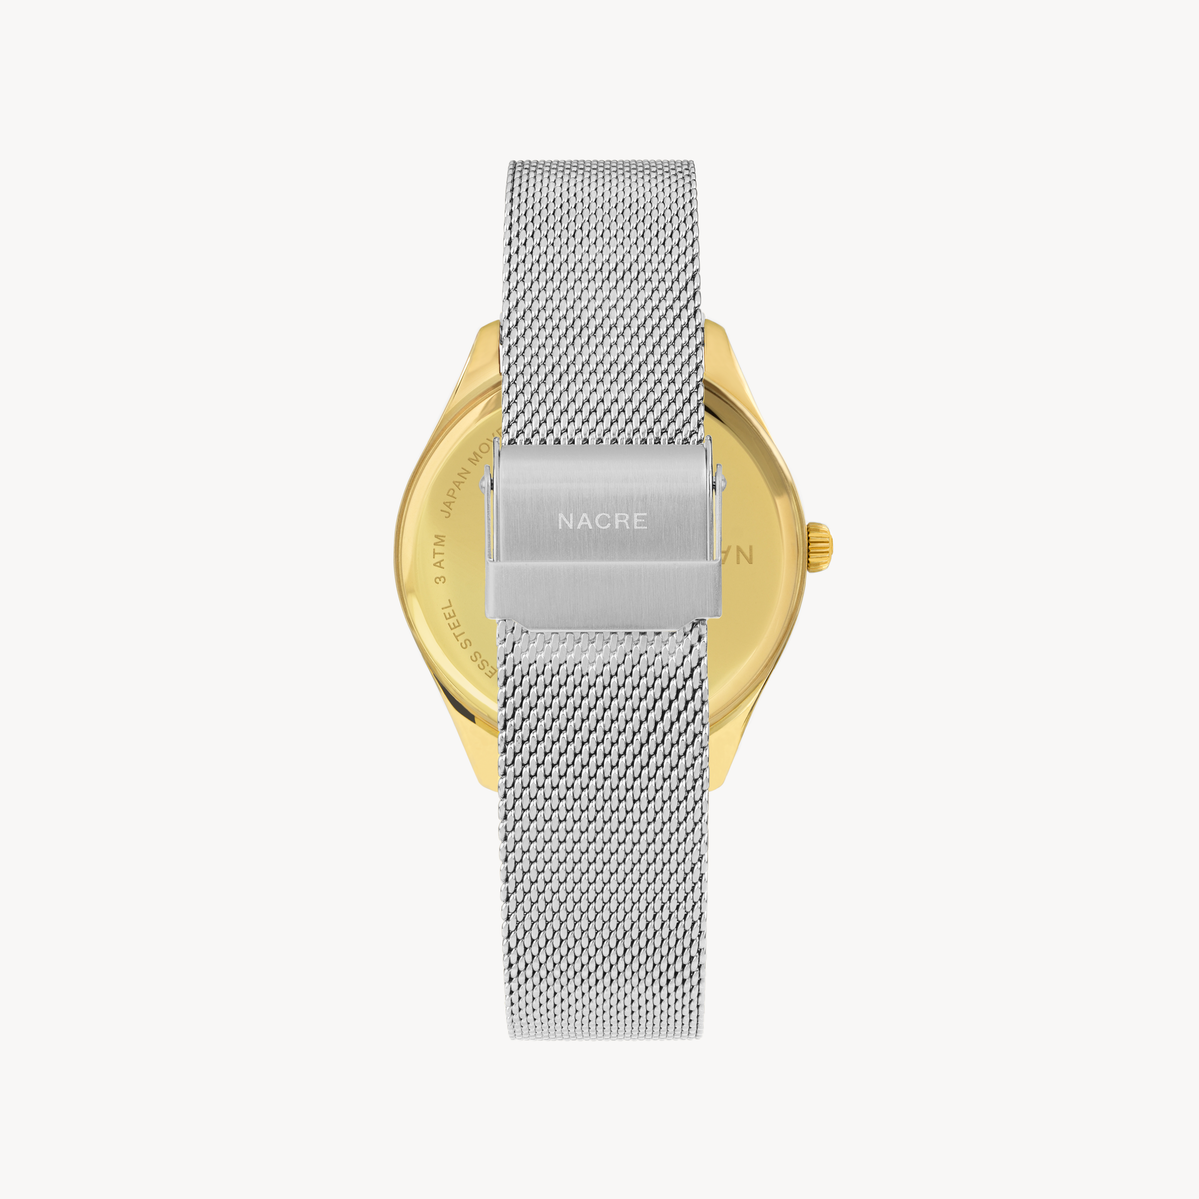 Lune 8 - Gold and White - Stainless Steel Mesh